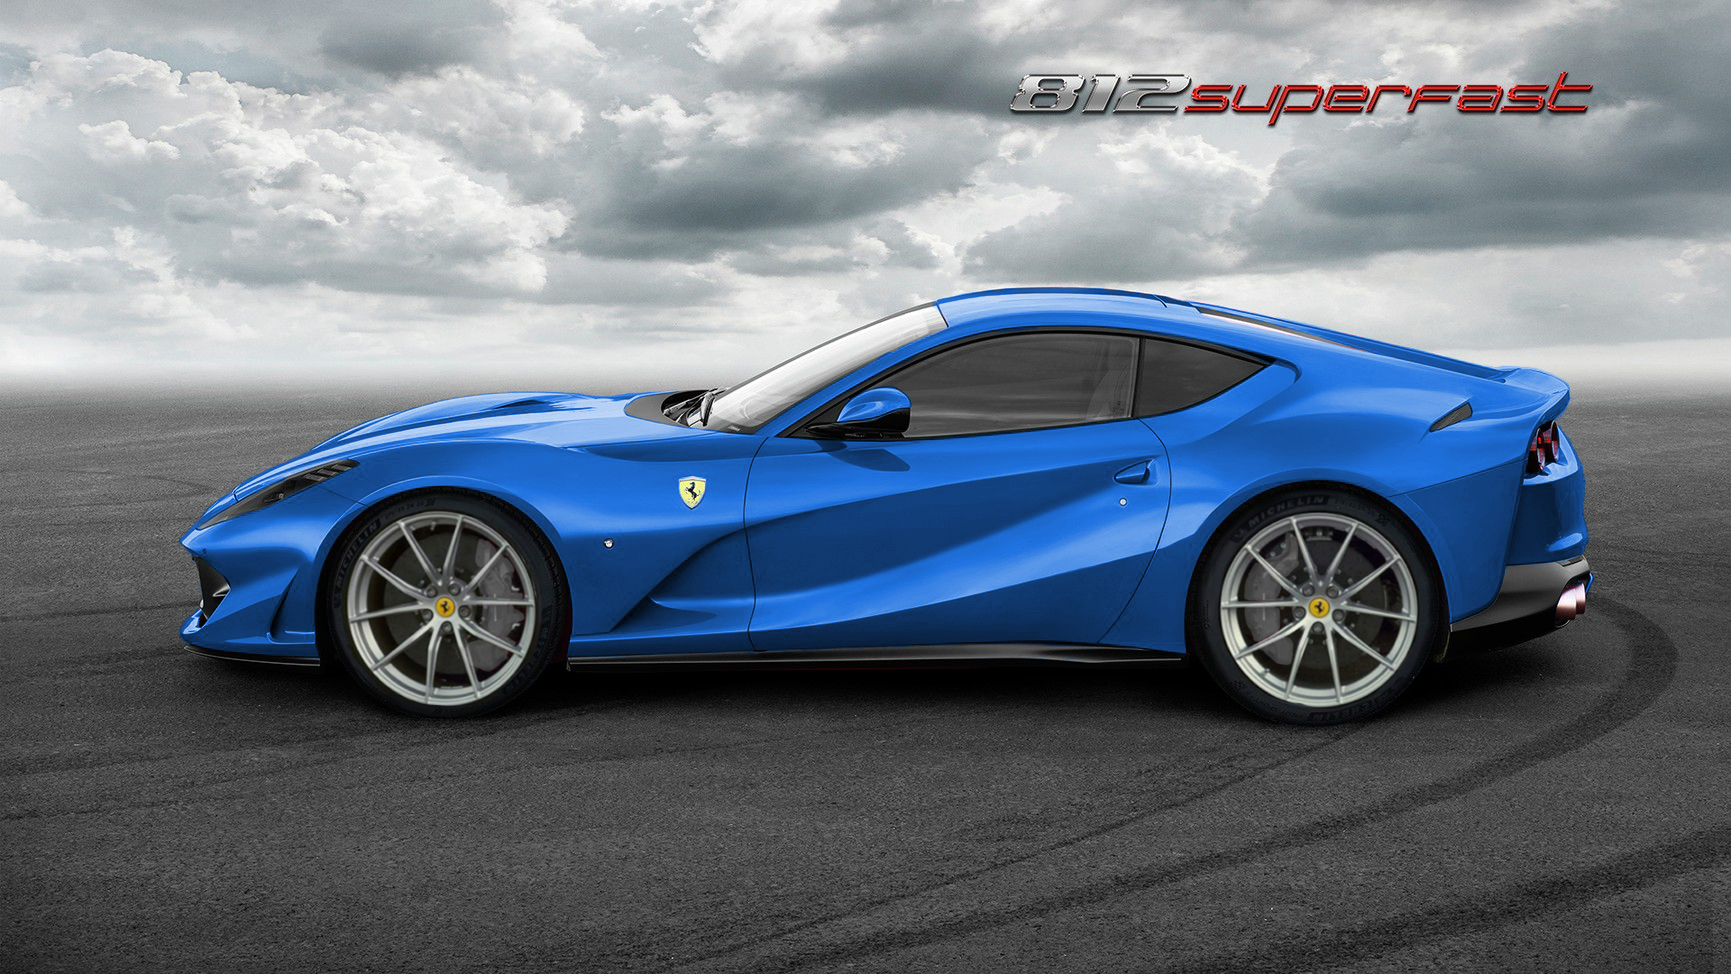 ferrari 812 superfast renders motorhive. Black Bedroom Furniture Sets. Home Design Ideas